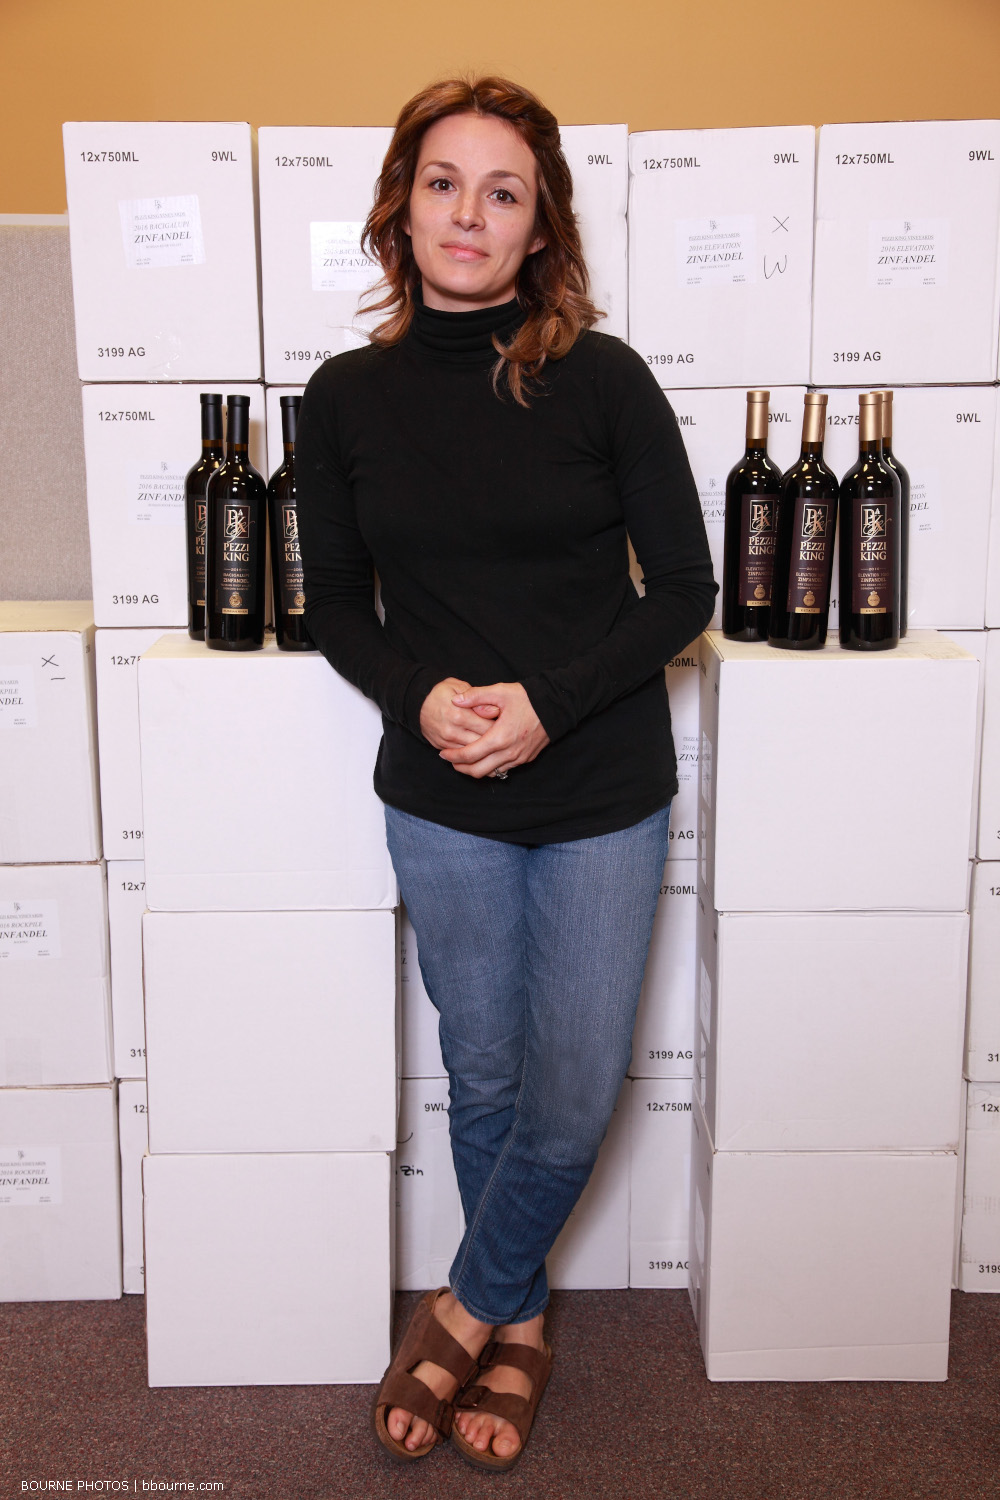 Brittany posing in front of boxes of wine with wine bottles.